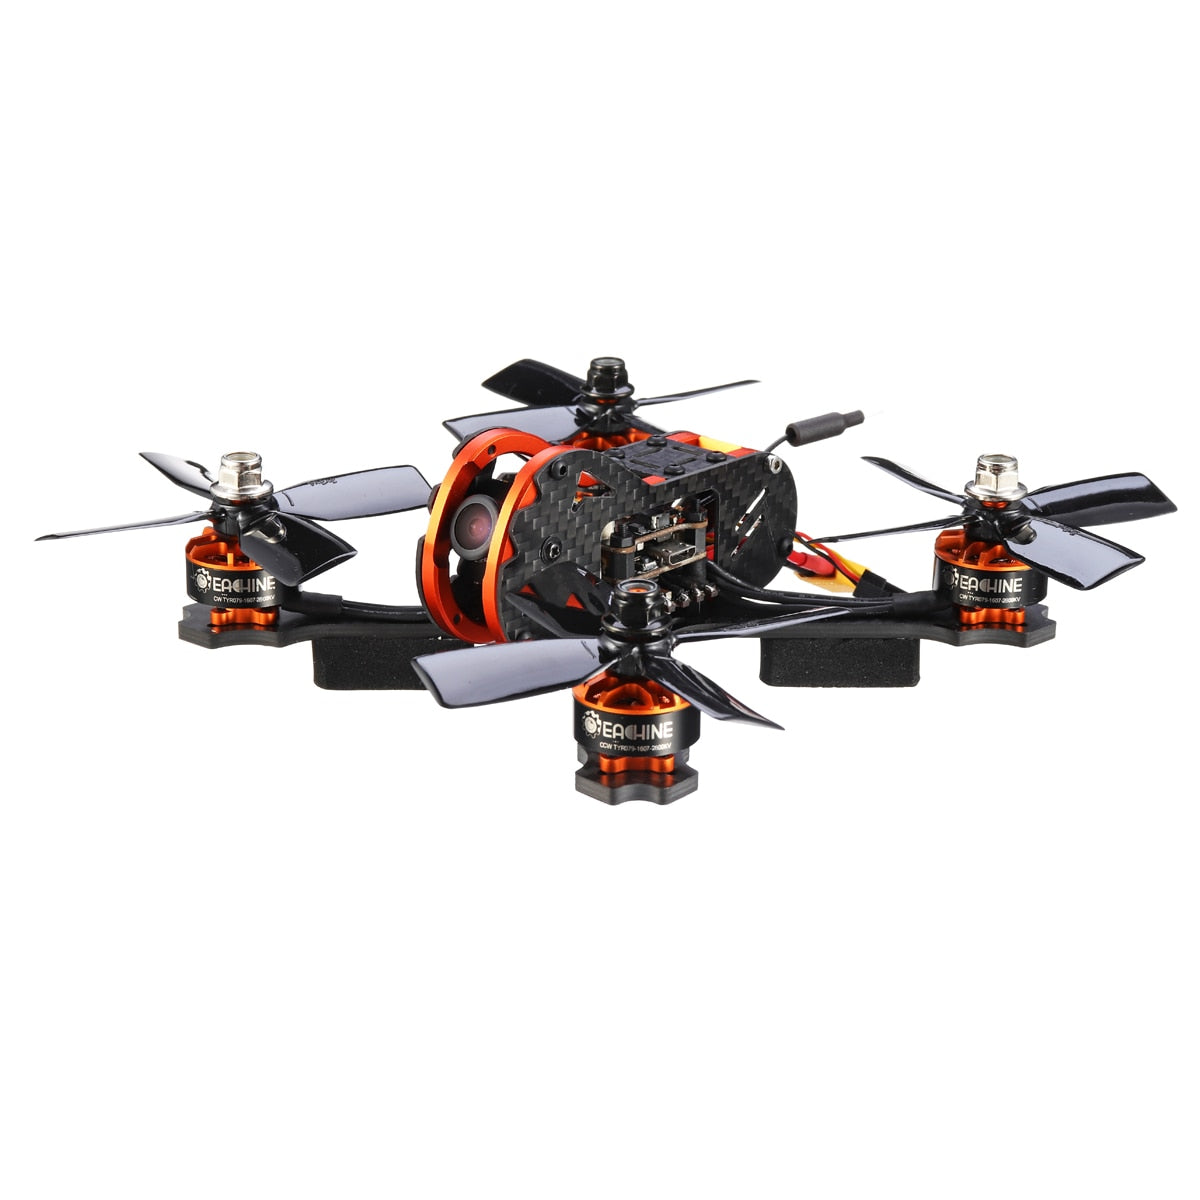 HOT SALE Eachine Tyro79 140mm 3 Inch DIY Version FPV Racing RC Drone - MARI MAR SHOP